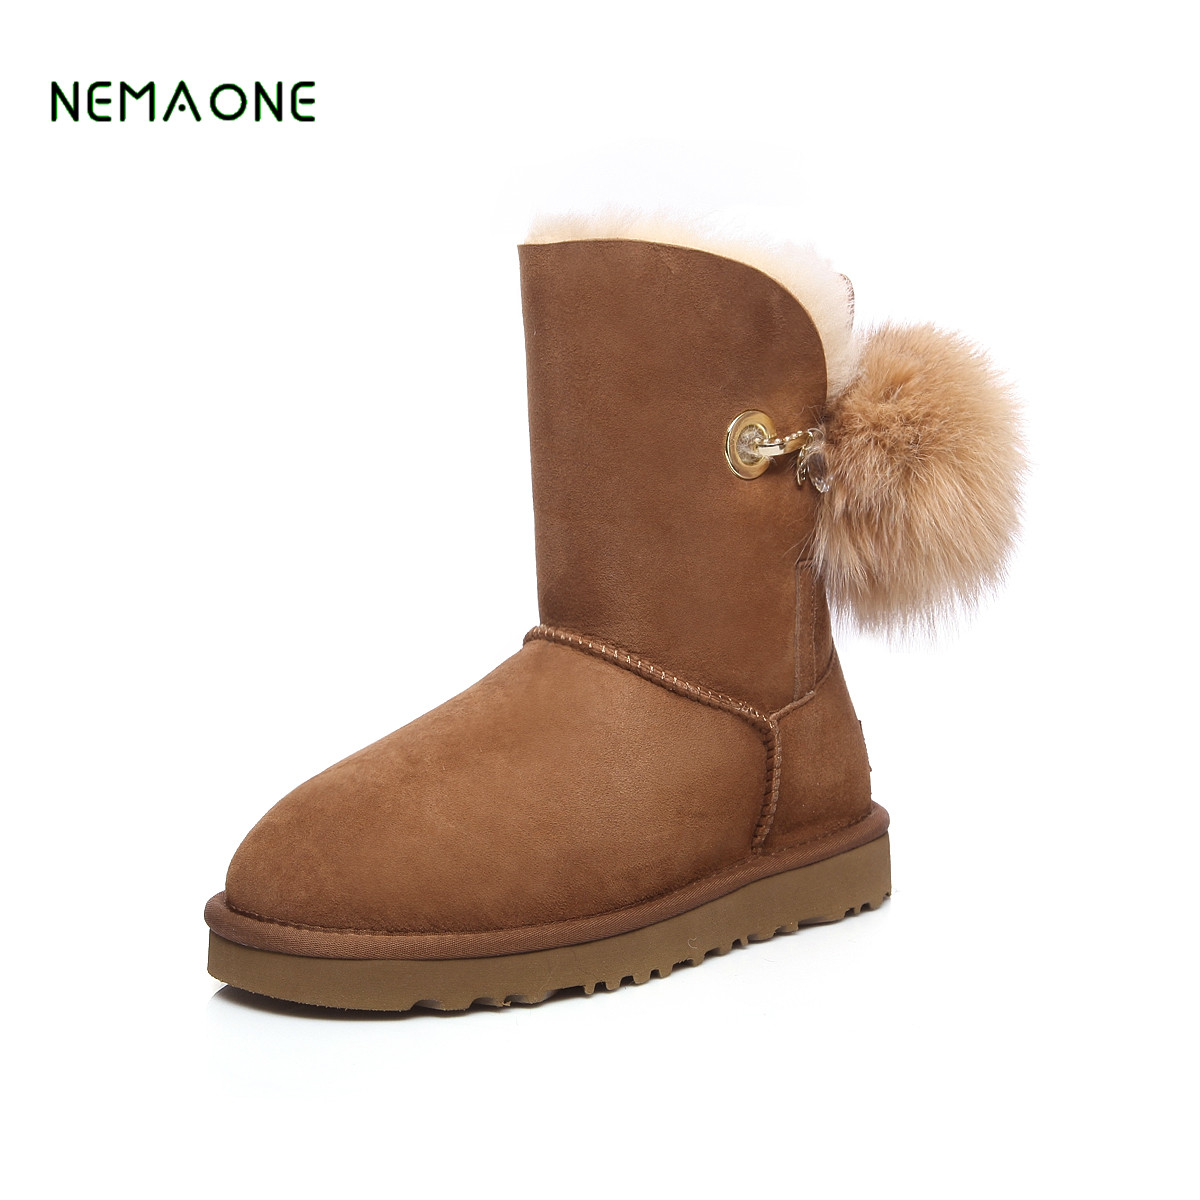 NEMAONE 2017 Genuine Leather Snow Boots Winter Shoes for Women New Arrival 100% Real Fur Classic Mujer Botas Waterproof huanqi 898c 2 4g 4ch 6 axis gyro rtf remote control quadcopter auto return drone toy